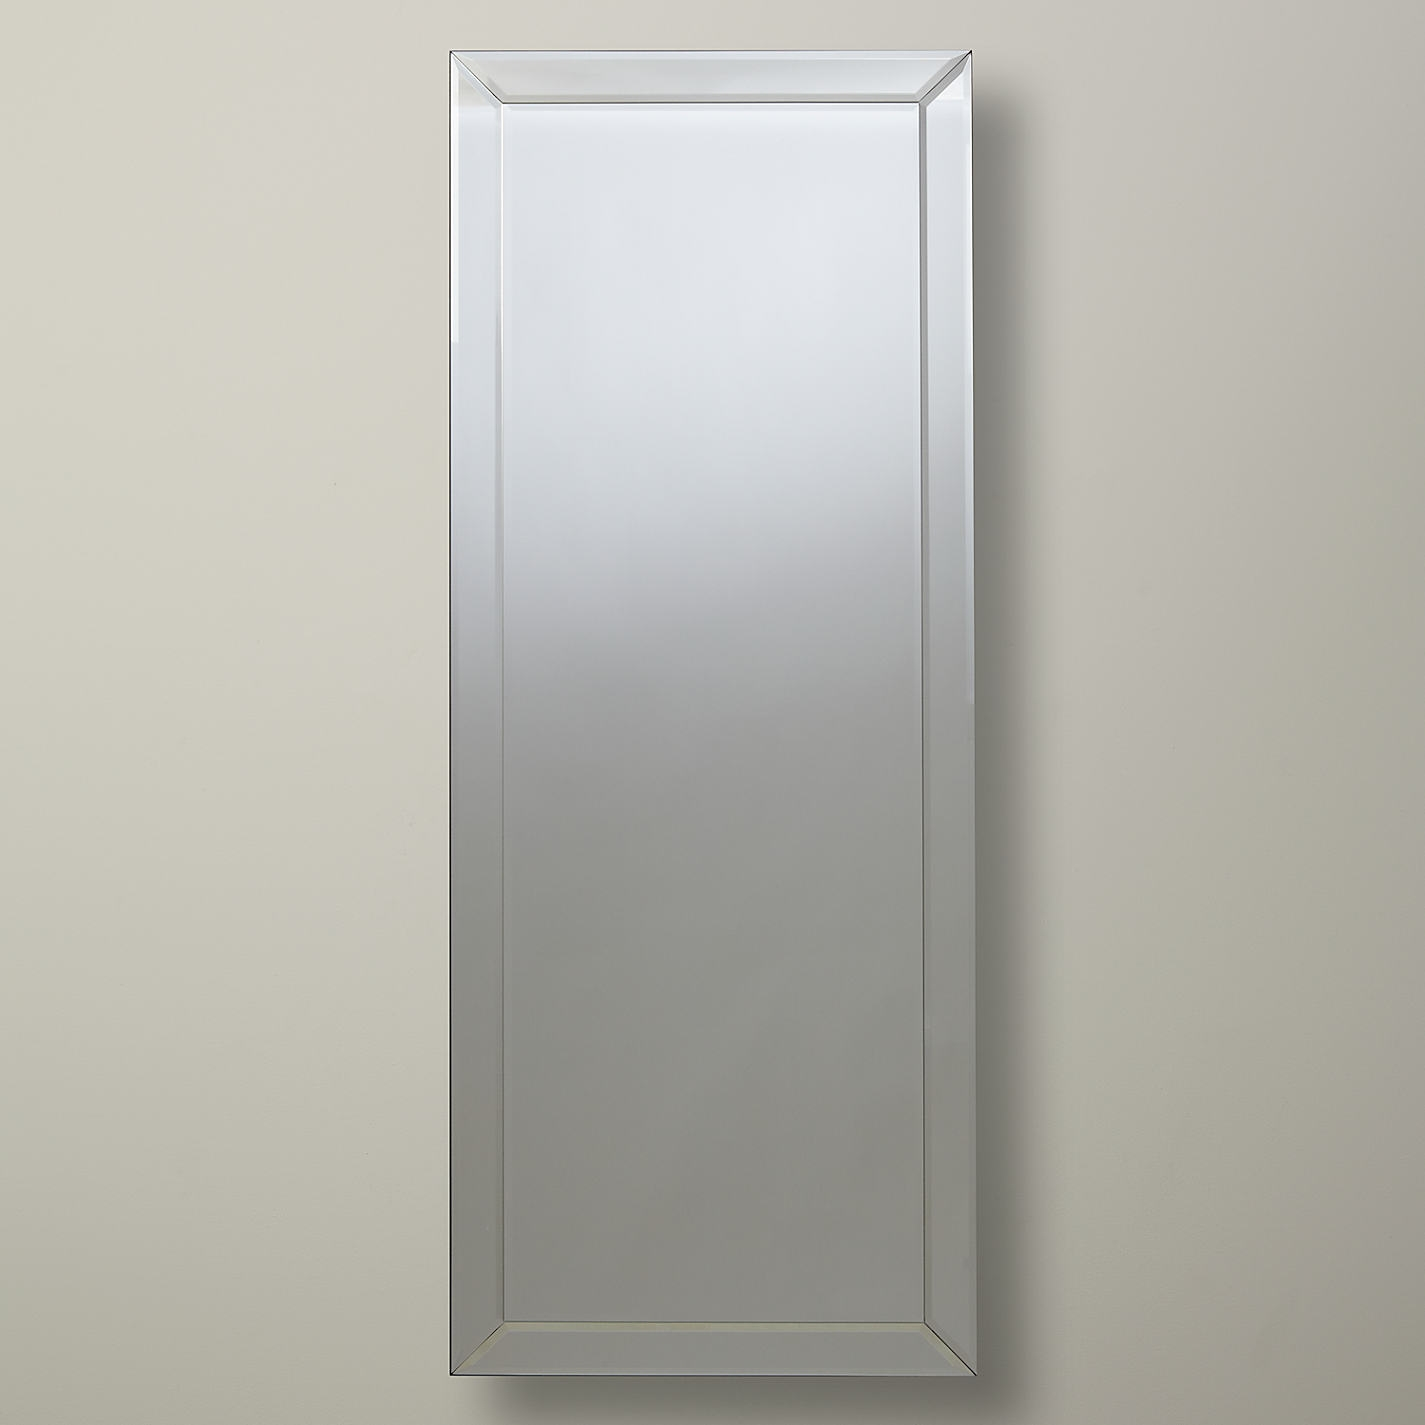 Bevelled Mirror As Indoor Decorative Touch Lgilab Modern Inside Bevel Edged Mirror (Image 6 of 15)